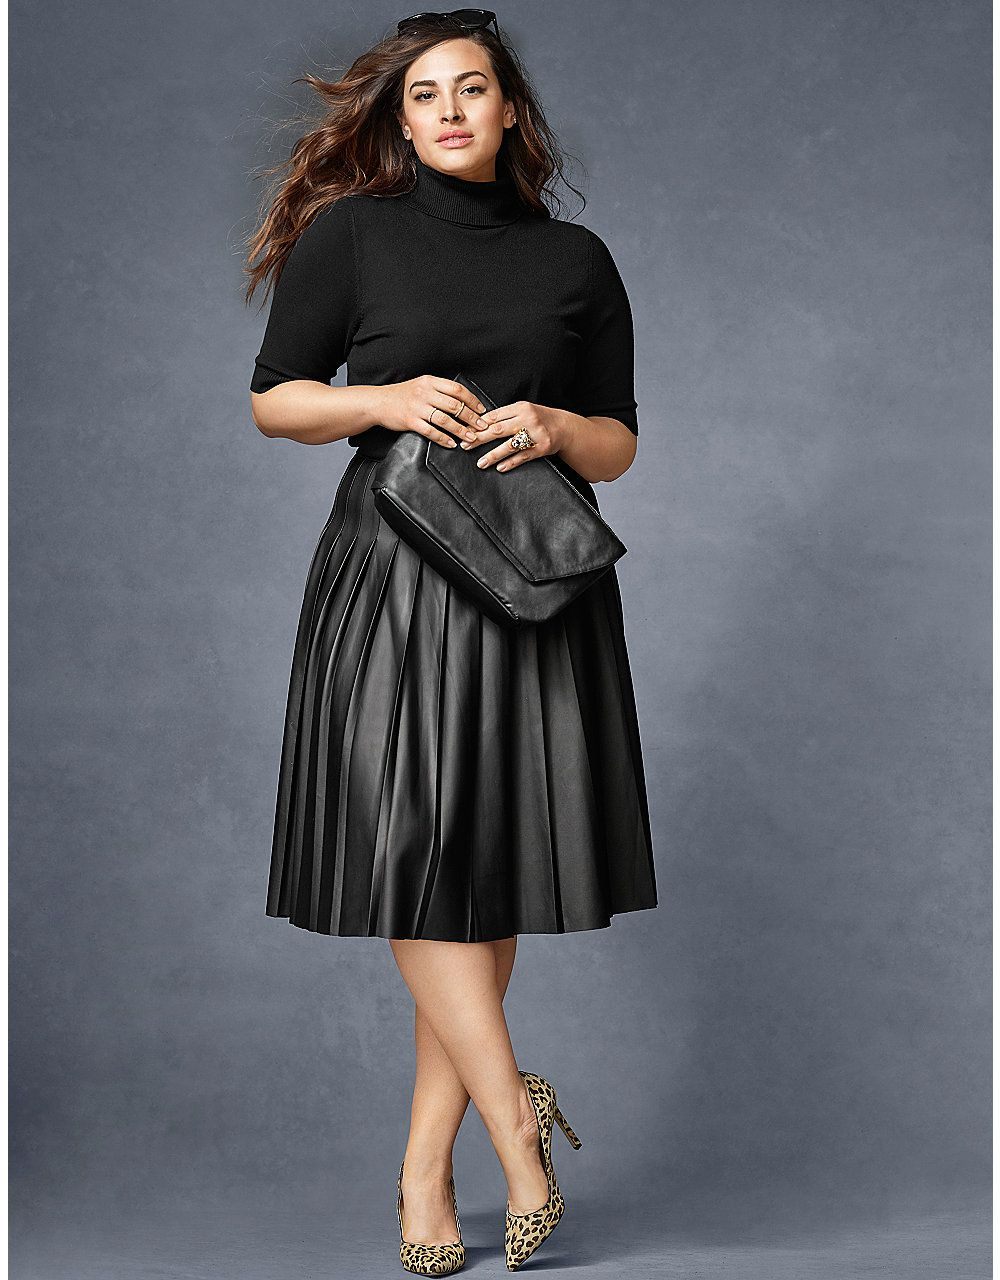 Black faux leather pleated skirt plus size – Modern skirts blog ...